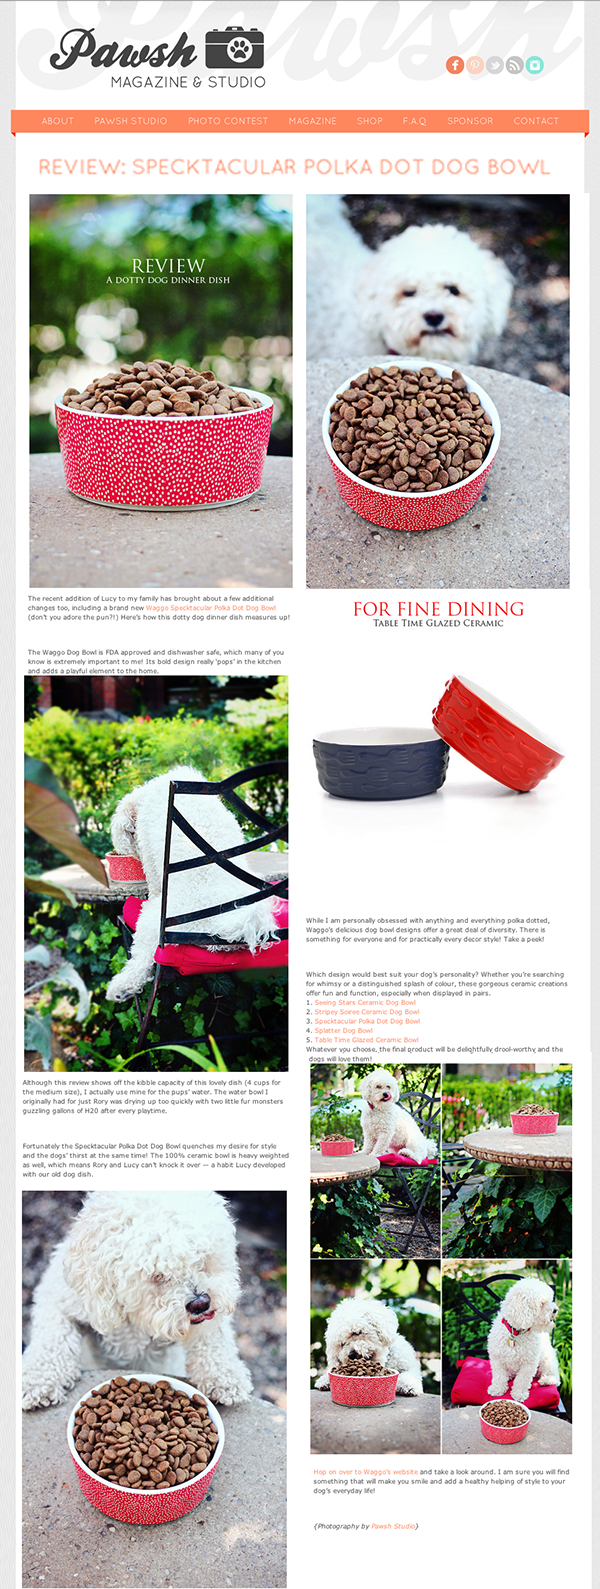 Pawsh Magazine July 2014 Cute Red Ceramic Dog Bowls